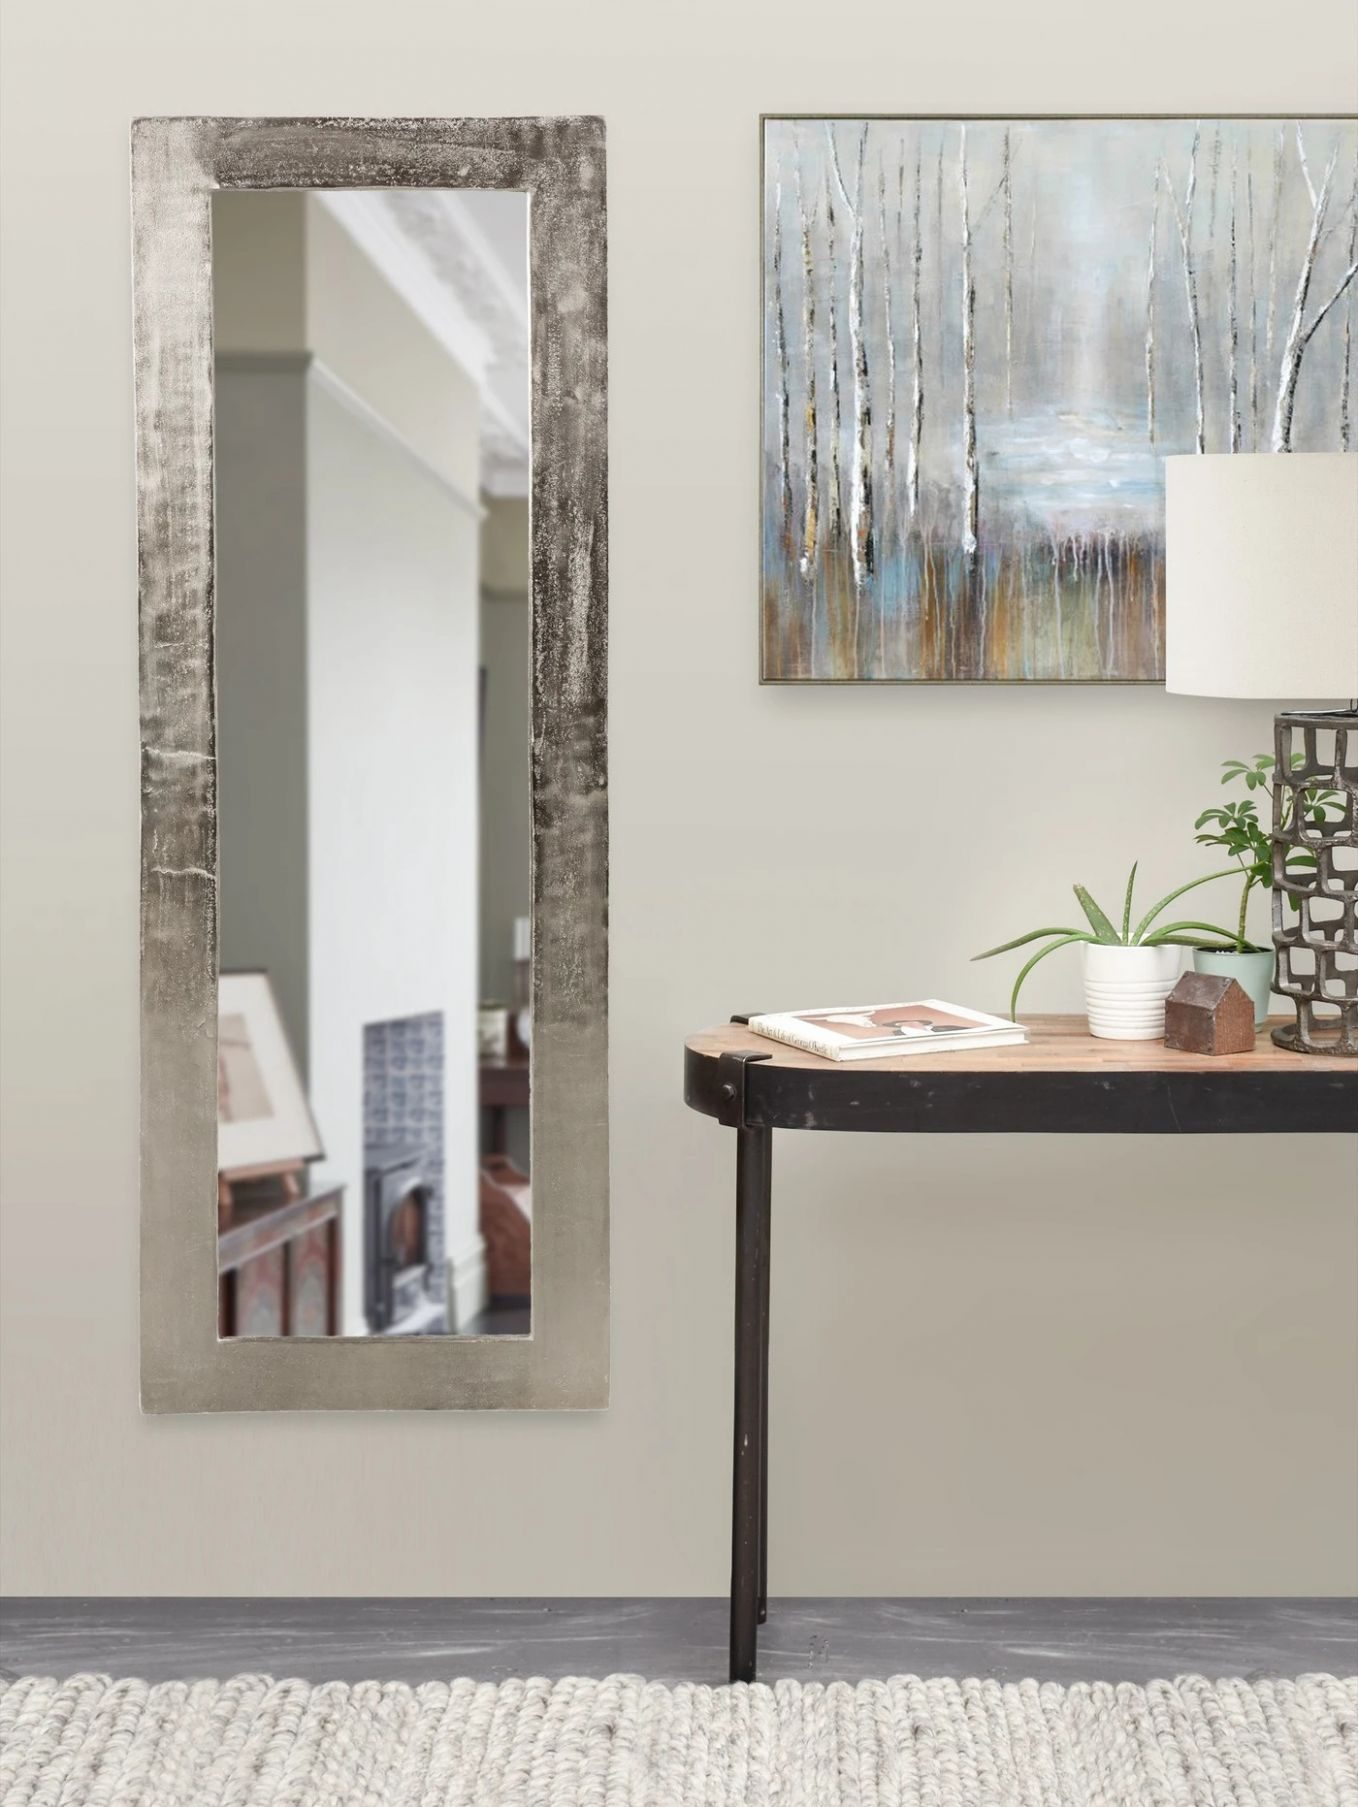 How to use mirrors for home decor - Quora - home decor quora